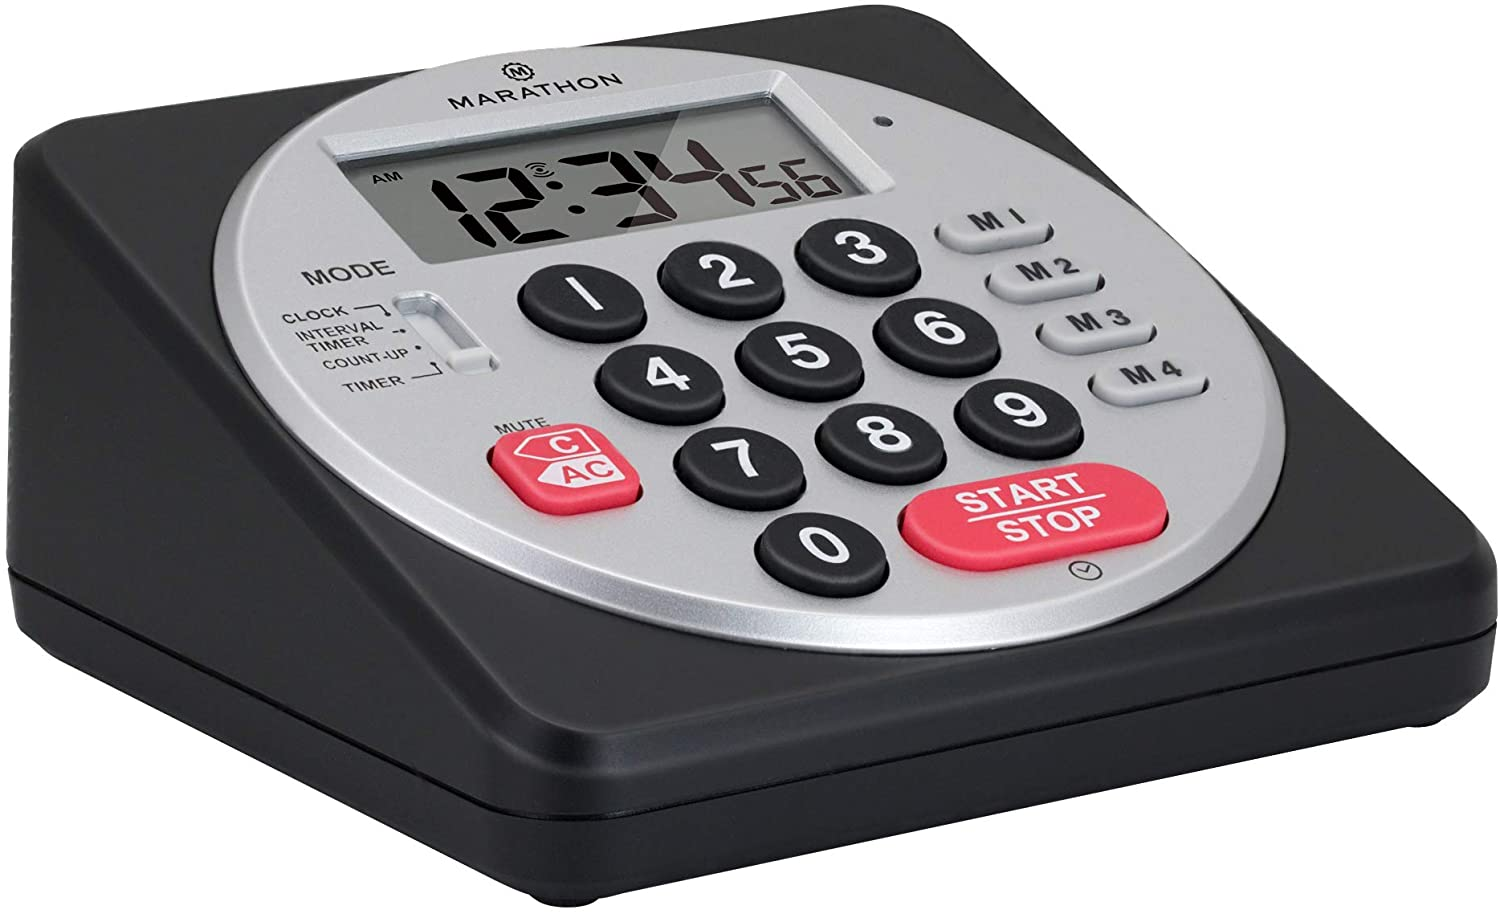 Marathon Commercial Grade 100-Hour Keypad Digital Timer with Loud Alarm, Volume Control, Flashing Visual Alarm, Countdown/up, Clock Feature and Batteries Included (Direct Entry Table Timer Black)